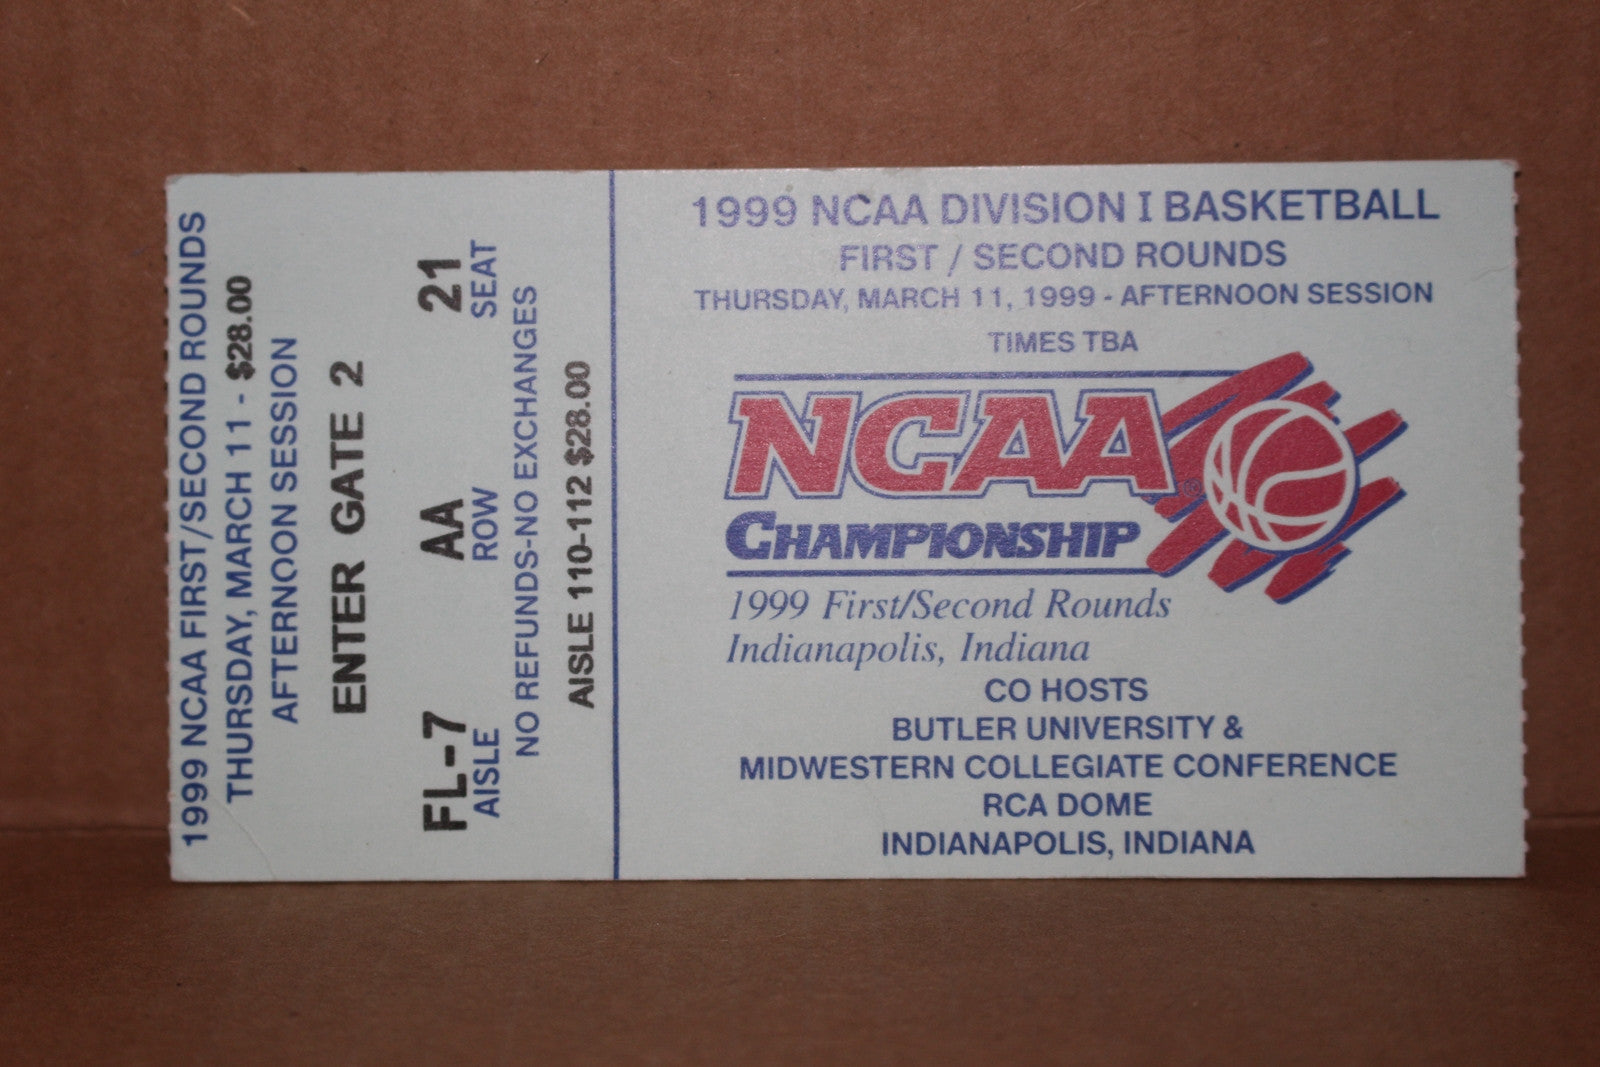 1999 NCAA Basketball First/Second Round Indianapolis Ticket Stub - Vintage Indy Sports